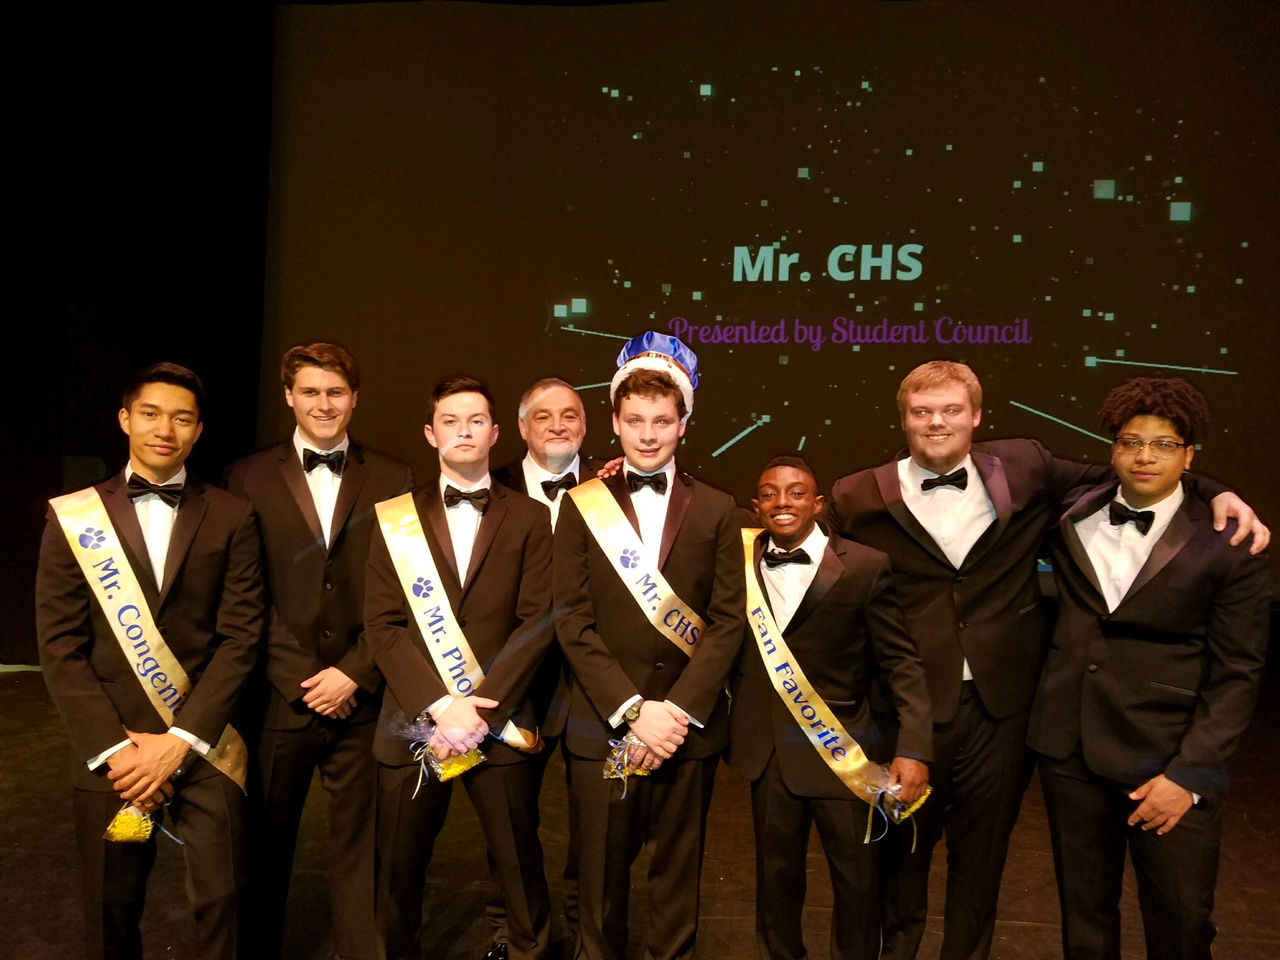 The 2018 Mr. CHS participants strike one last pose at the end of the night.